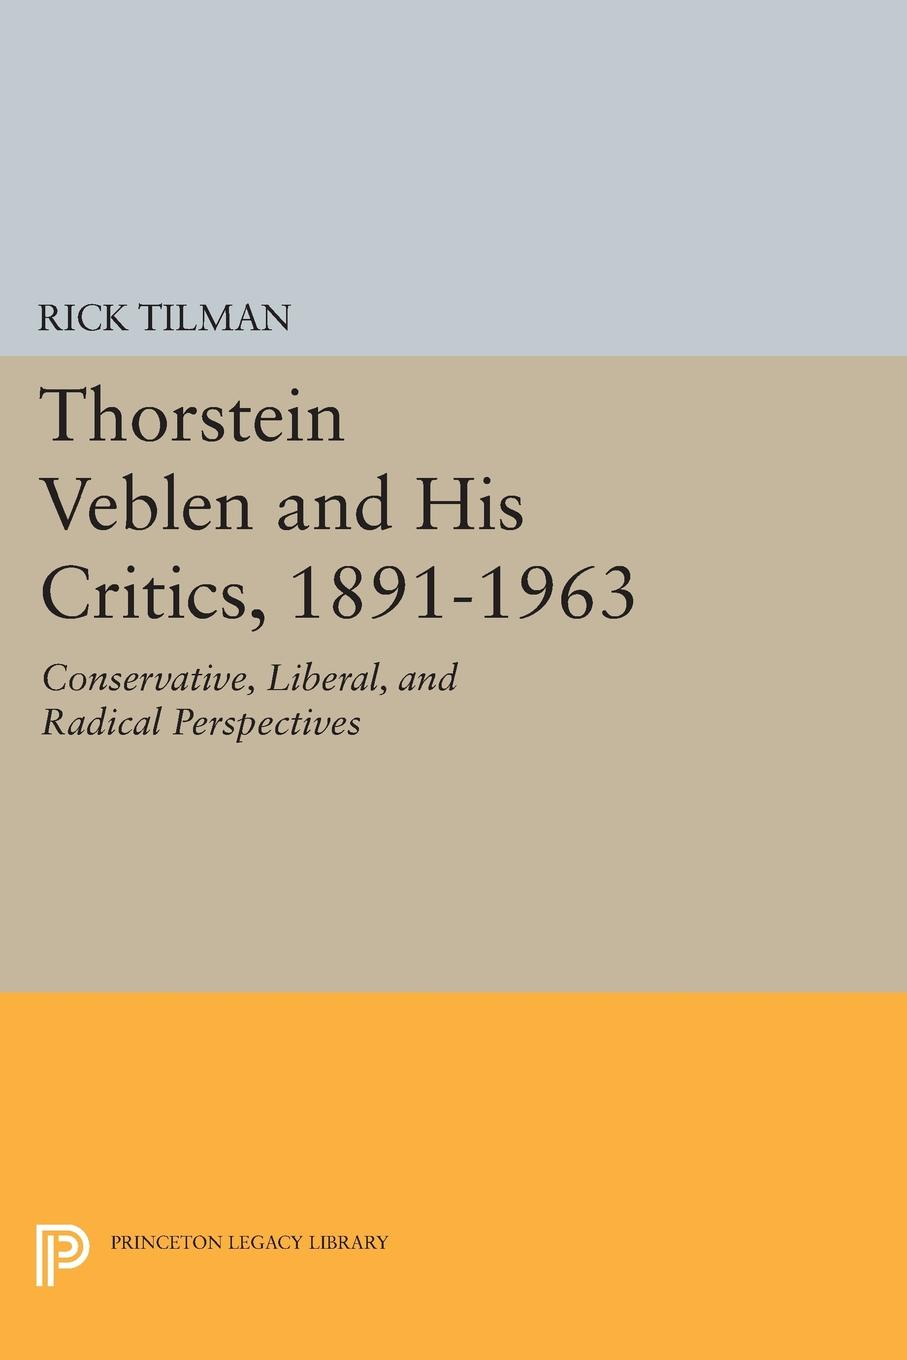 где купить Rick Tilman Thorstein Veblen and His Critics, 1891-1963. Conservative, Liberal, and Radical Perspectives по лучшей цене